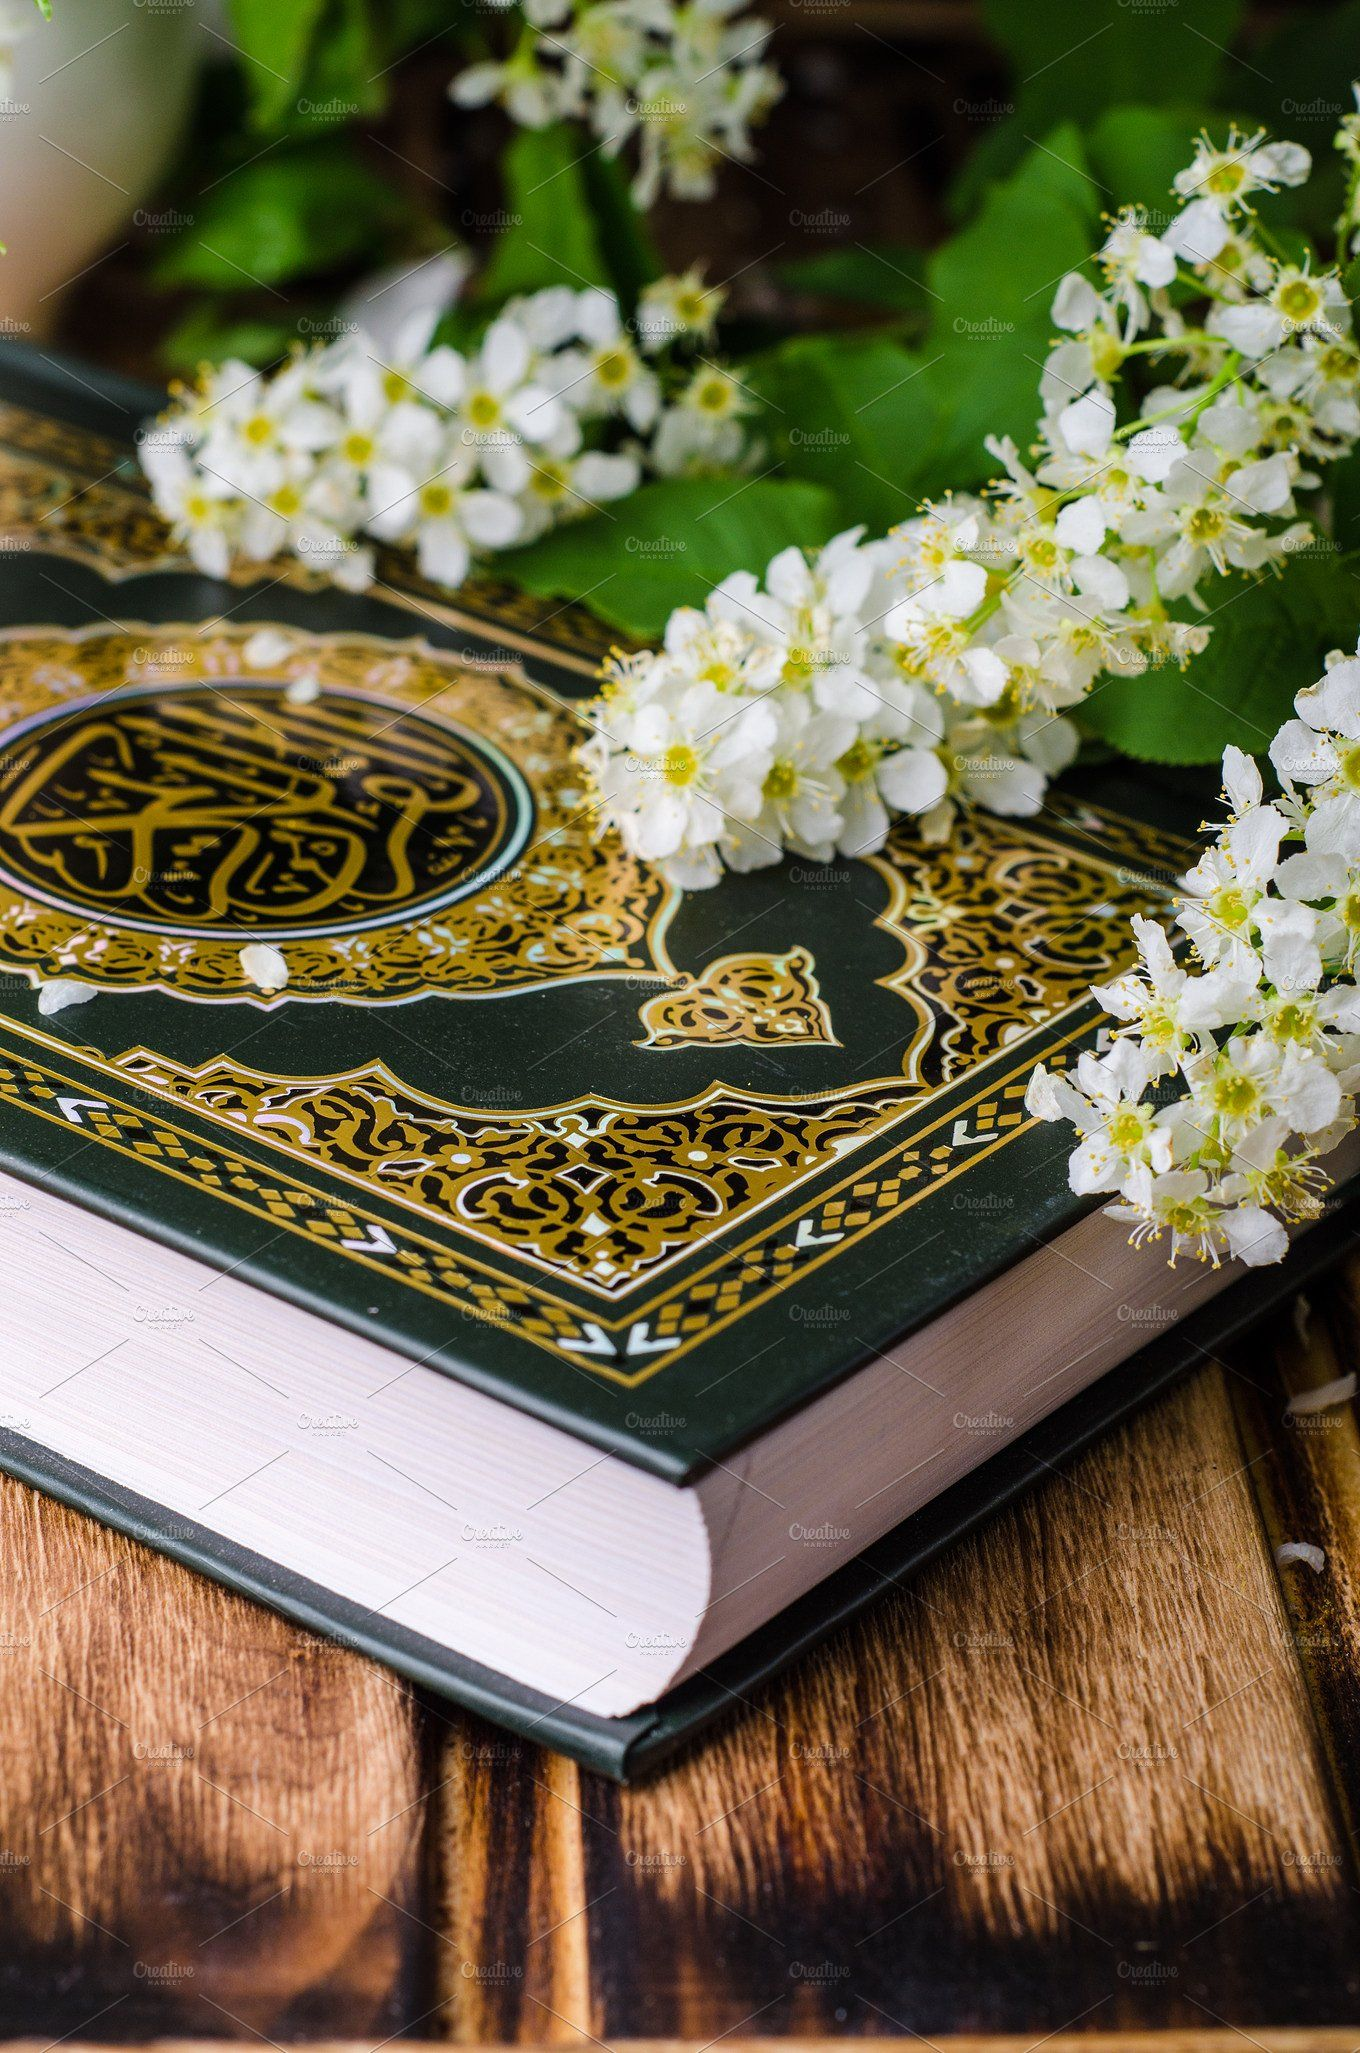 Quran Holly Book Of Islam With Spring Flowers And Blue Scarf On Wooden Background Selective Focus On Book Islamic Wallpaper Quran Book Quran Wallpaper